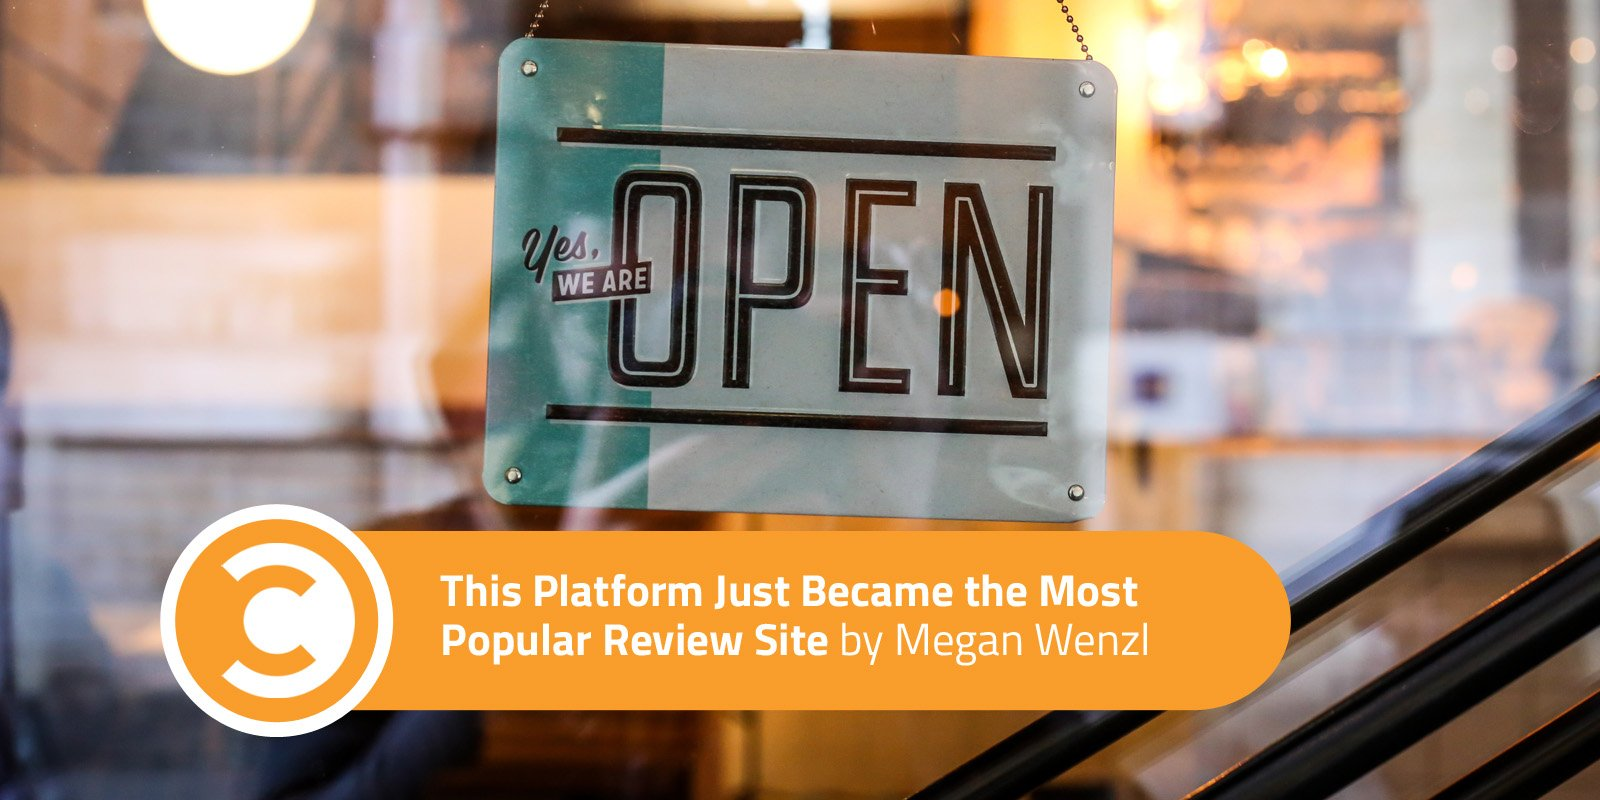 This Platform Just Became the Most Popular Review Site